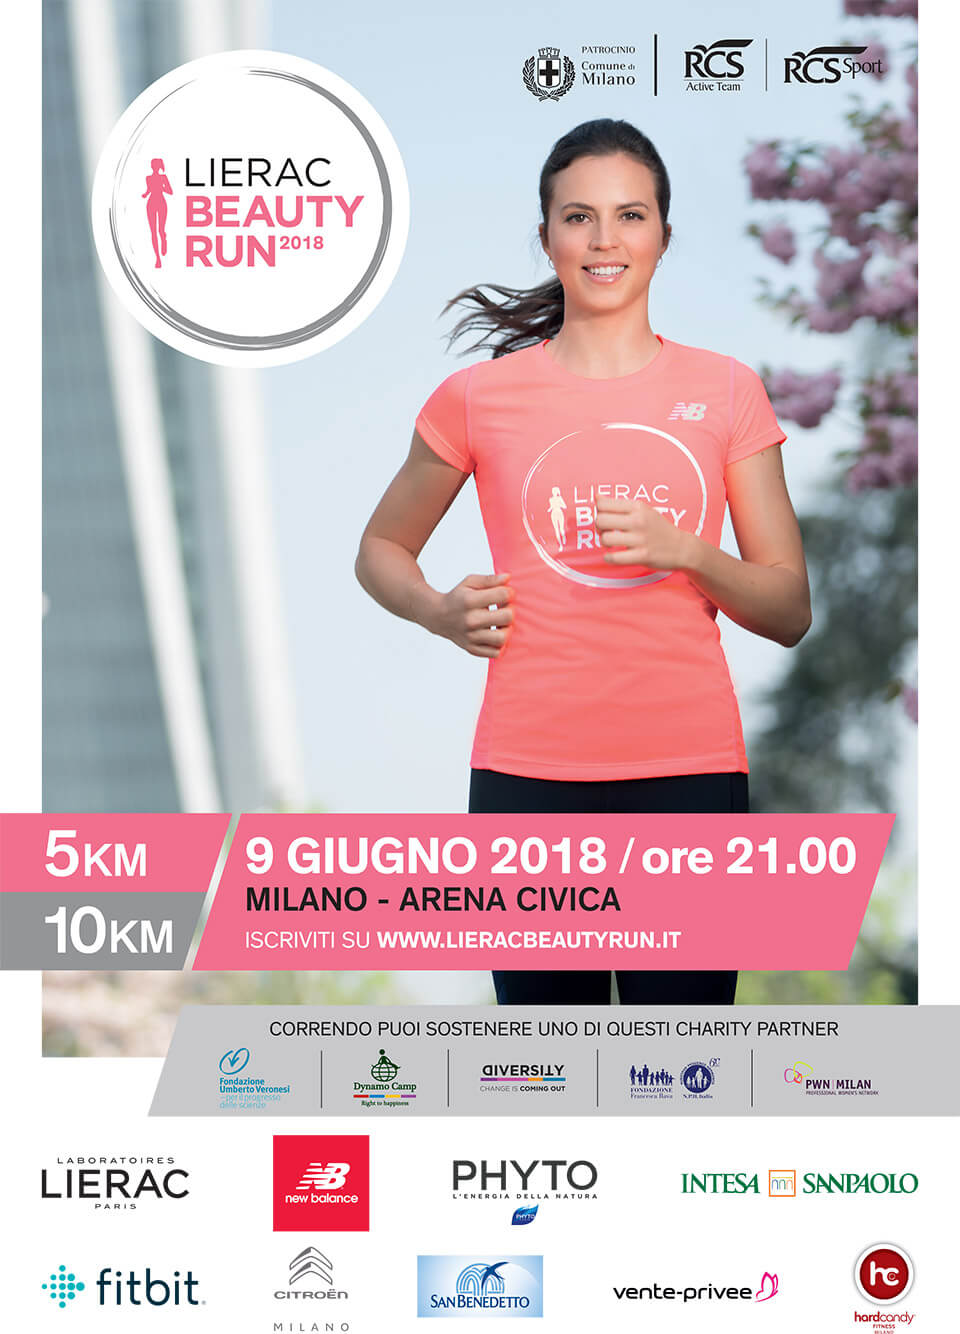 Lierac Beauty Run 2018